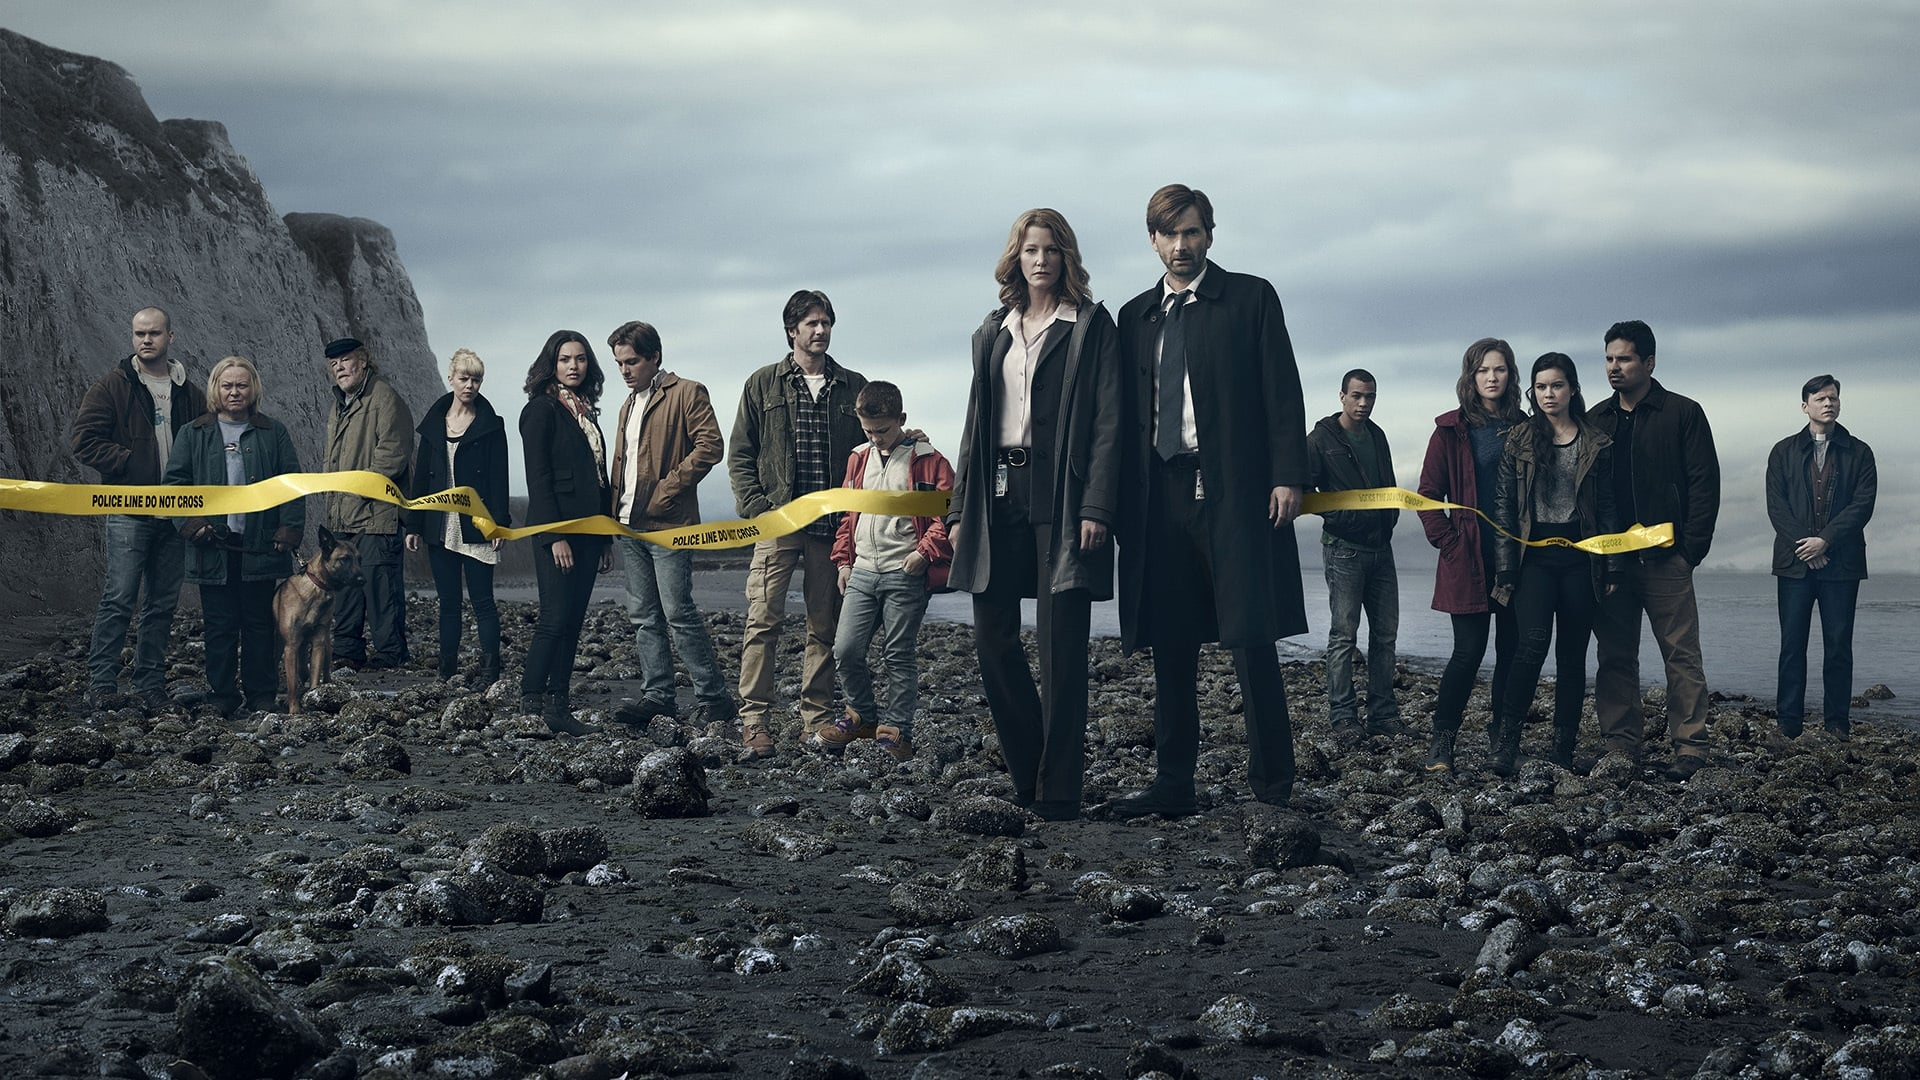 No second season for Gracepoint